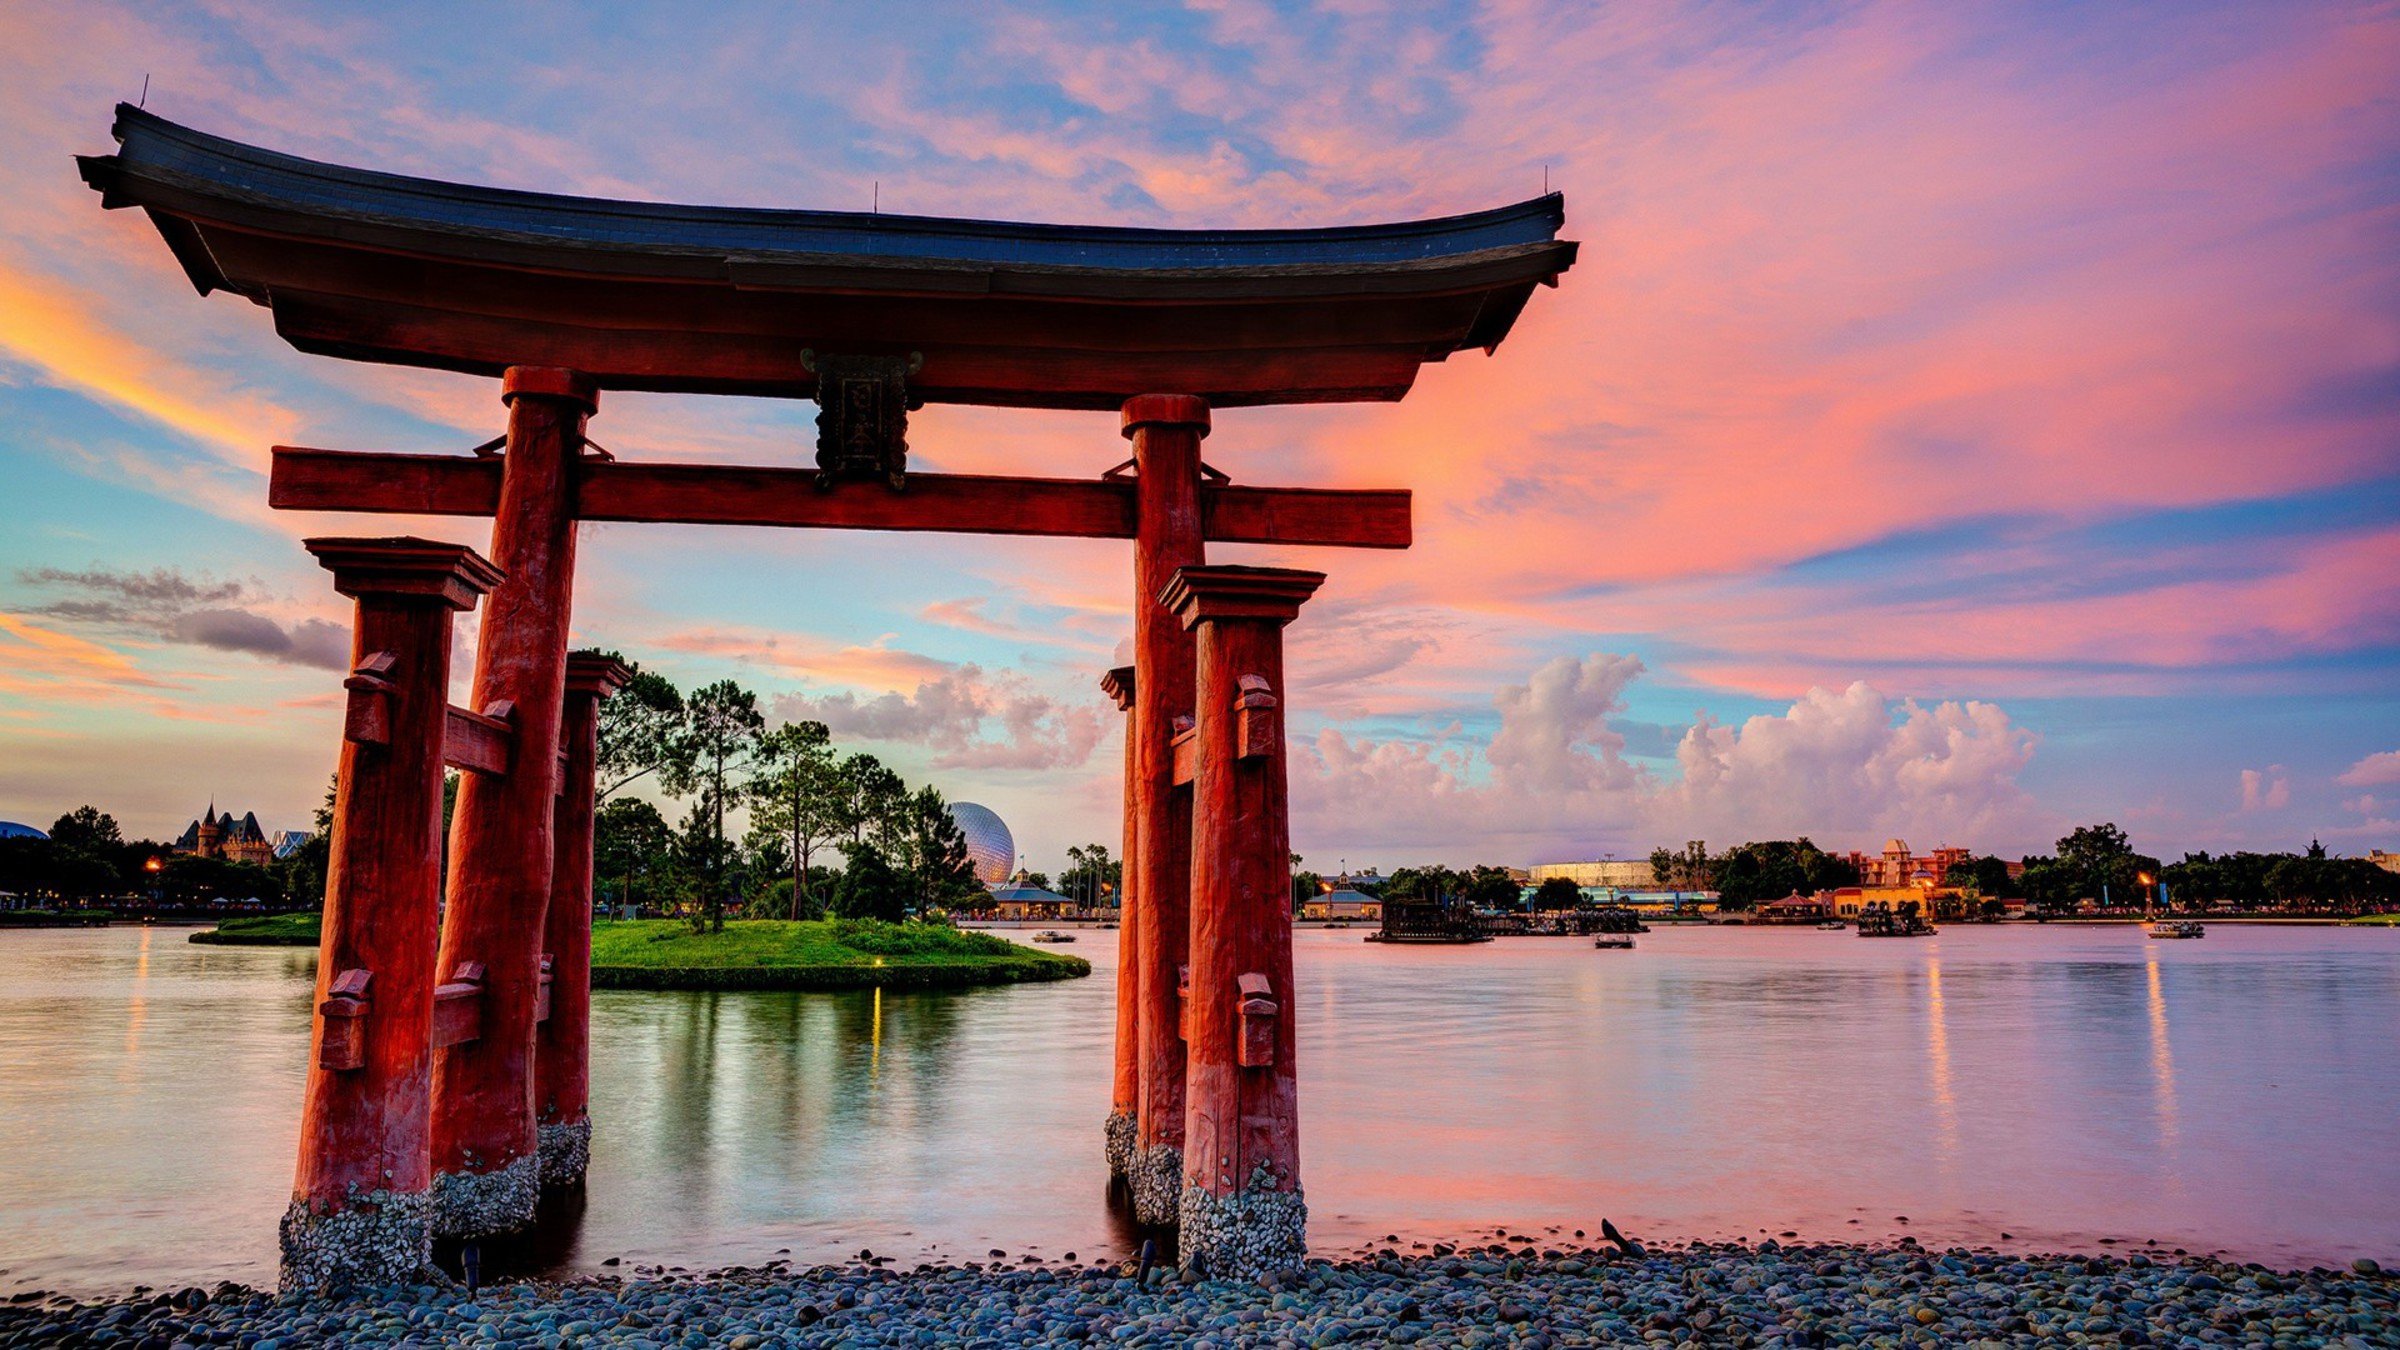 Epcot Disneyland Torii Seen Kultur Japanische Architektur Wallpaper